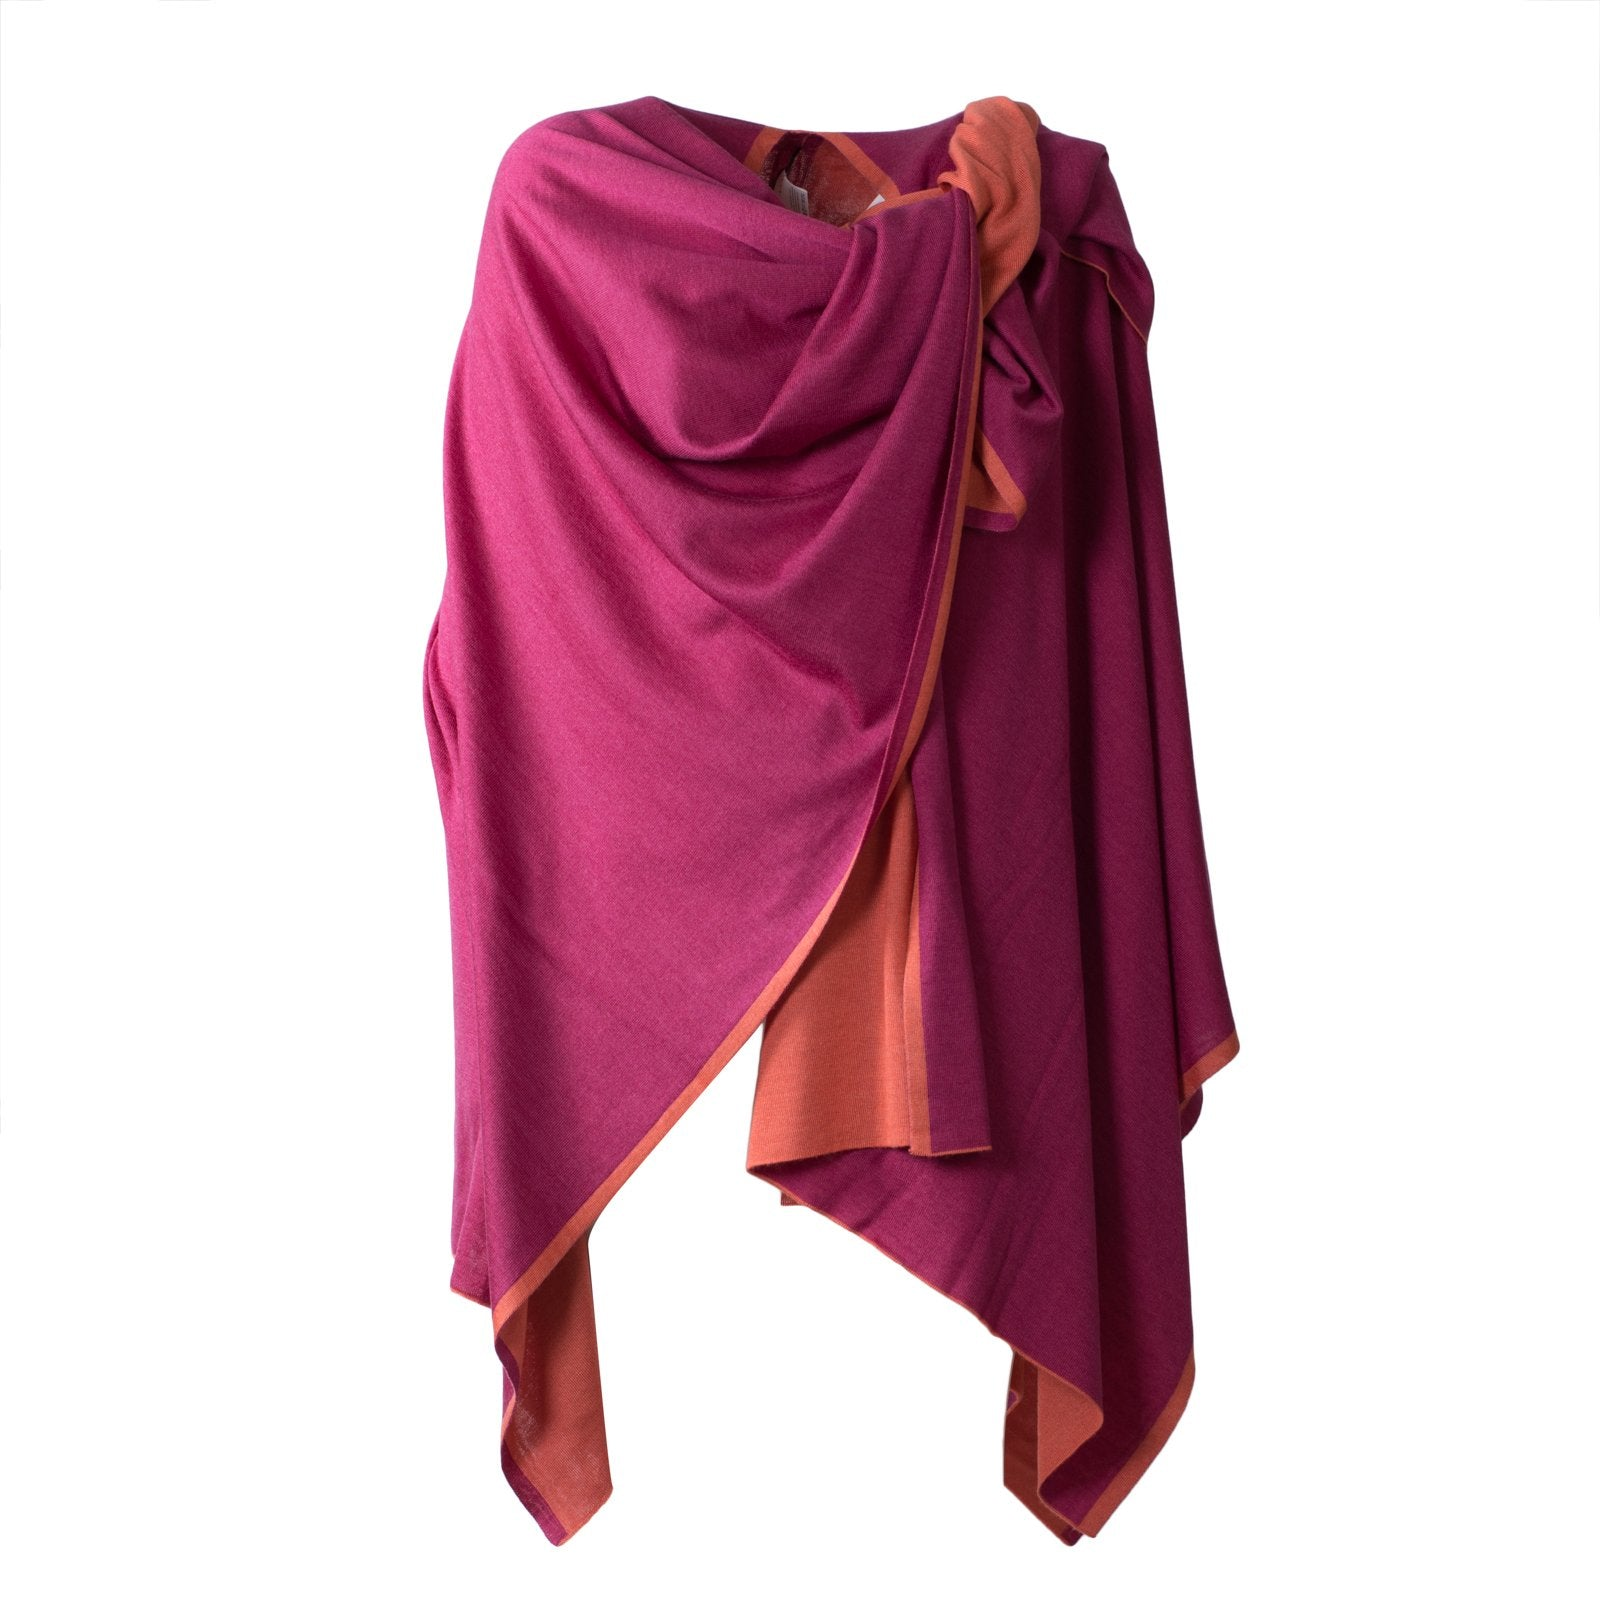 Large Reversible Pashmina Cape in Cherry and Coral - Jennifer Tattanelli